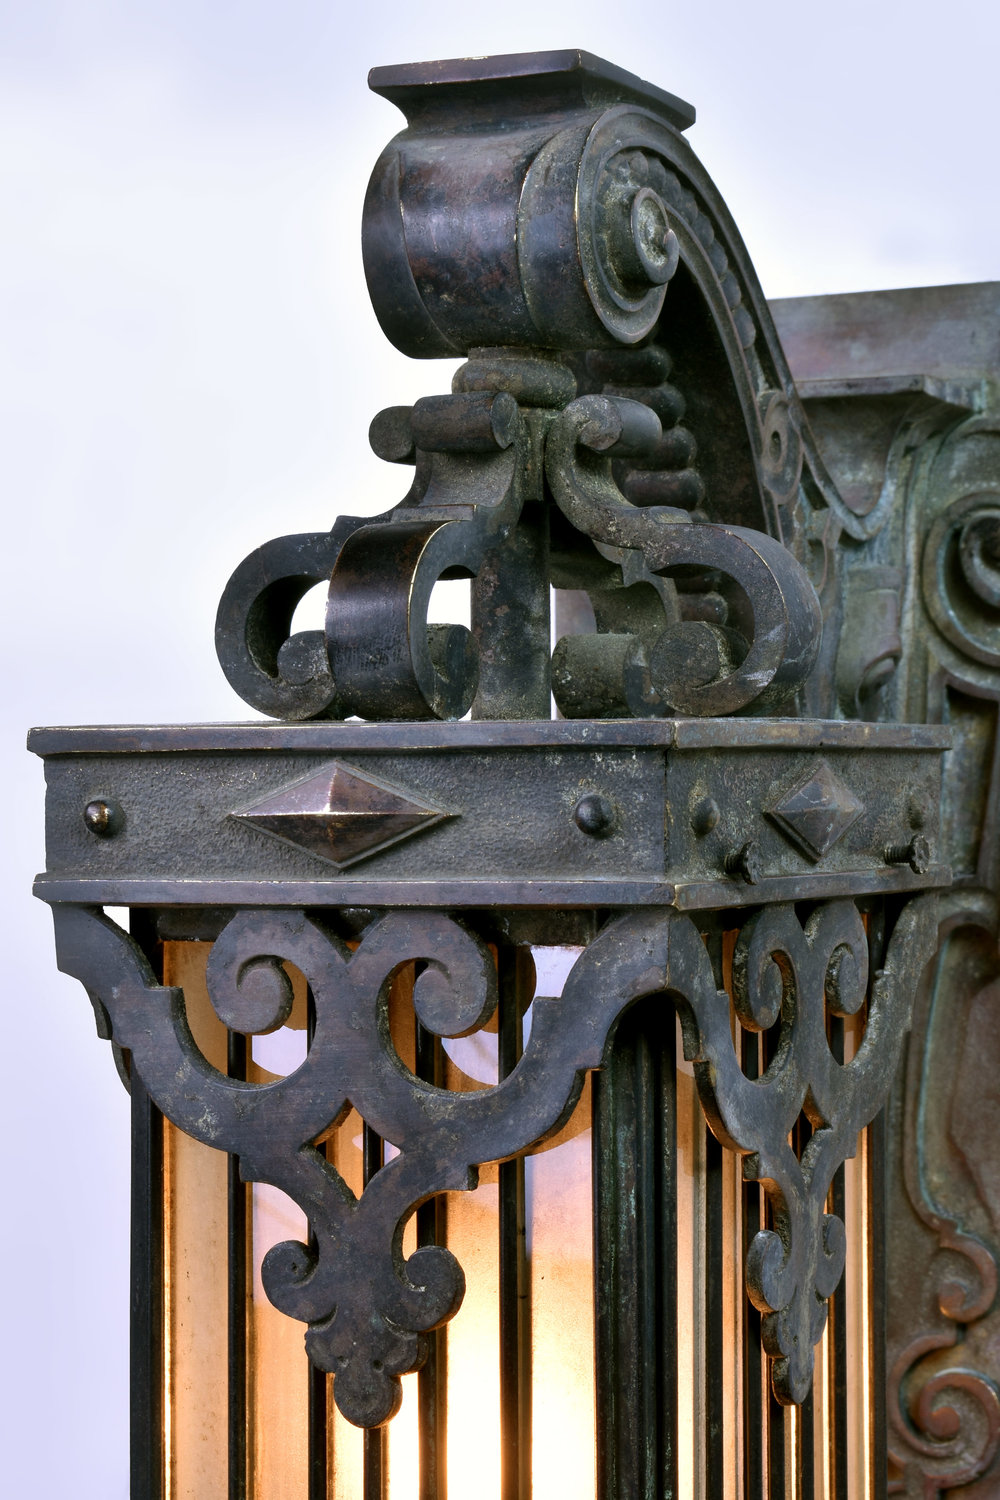 47236-cast-bronze-sconce-with-leaded-glass-shade-close-detail.jpg